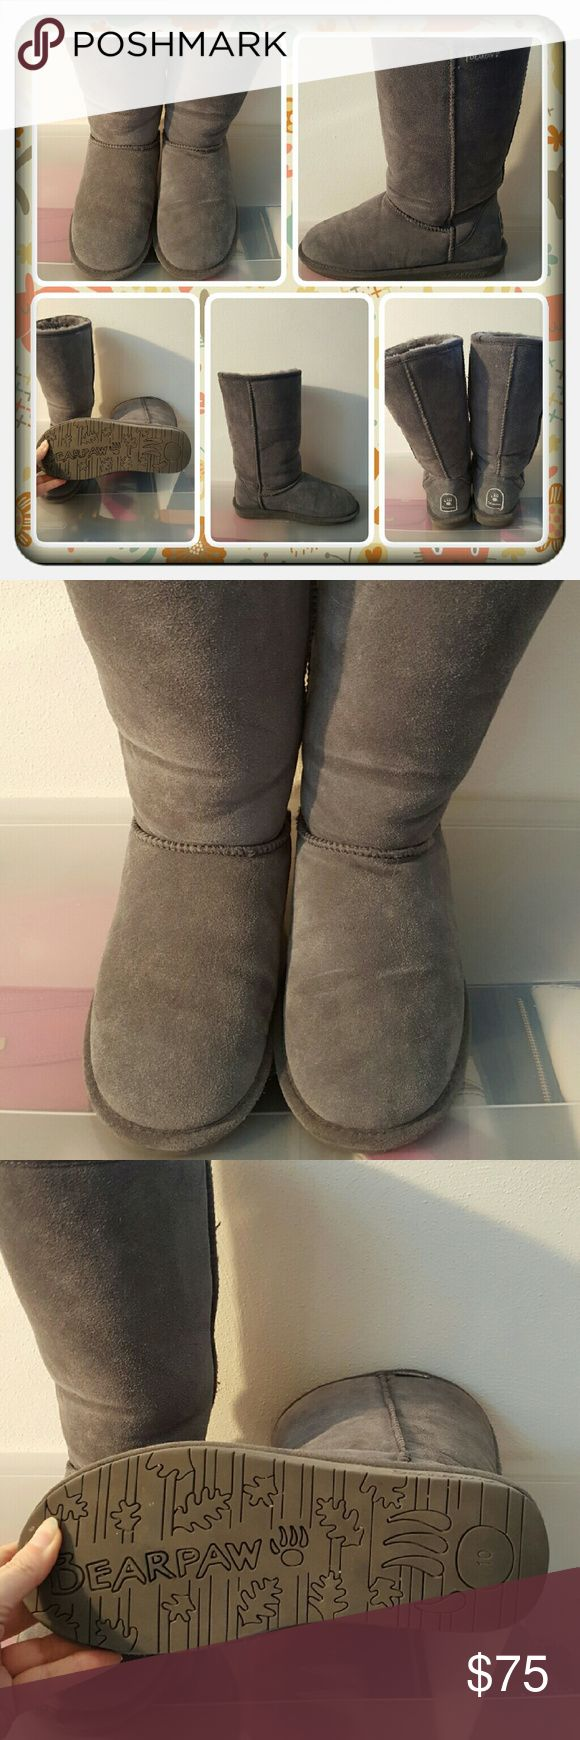 ❤ EUC Woman's Tall Grey Boots Size 10 M ❤ Woman's Tall Grey Boots By Bearpaw Size 10 Medium. I Wore 2-3 Times Excellent Condition No Wear On Heels Or Damage I'm Aware Of. These Are Perfect For Fall & Winter Super Cute  PAYPAL  TRADES  LOWBALLING YOU'LL BE BLOCKED ❤ BearPaw Shoes Winter & Rain Boots